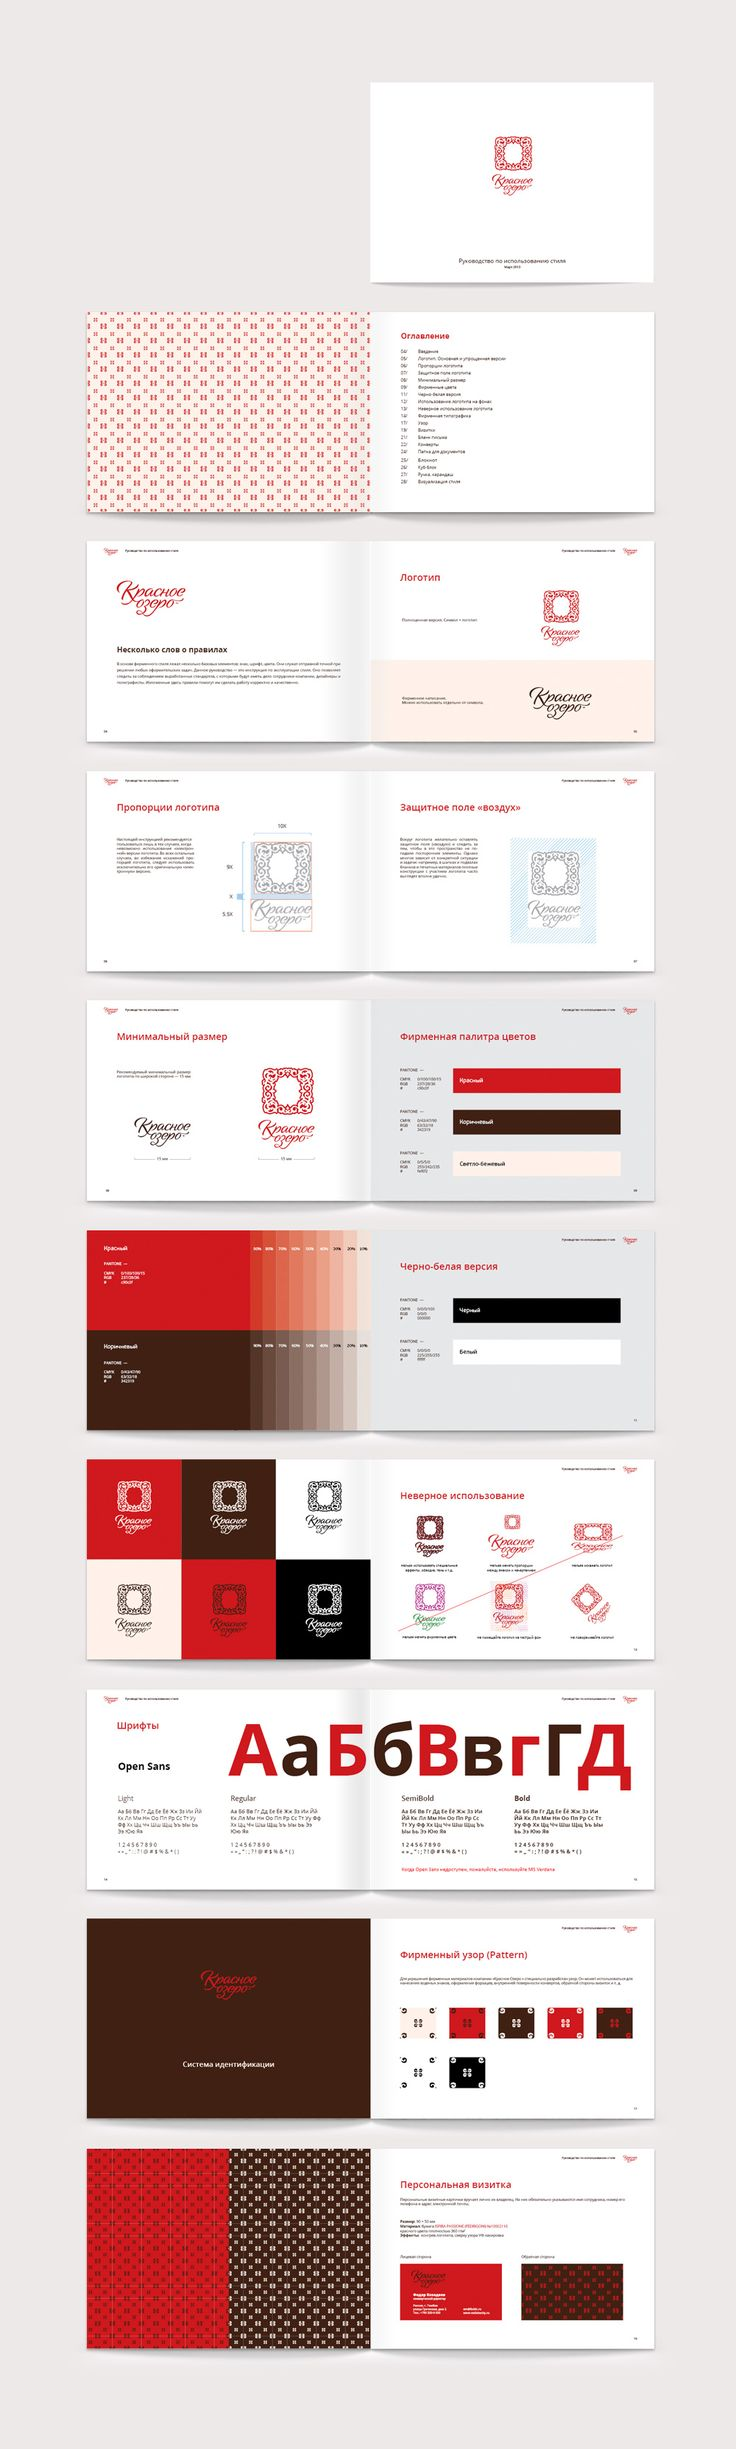 Redlake / brand / identity / book / style guide /packaging / business card / stationery / red & brown / by Alexander Sapelkin